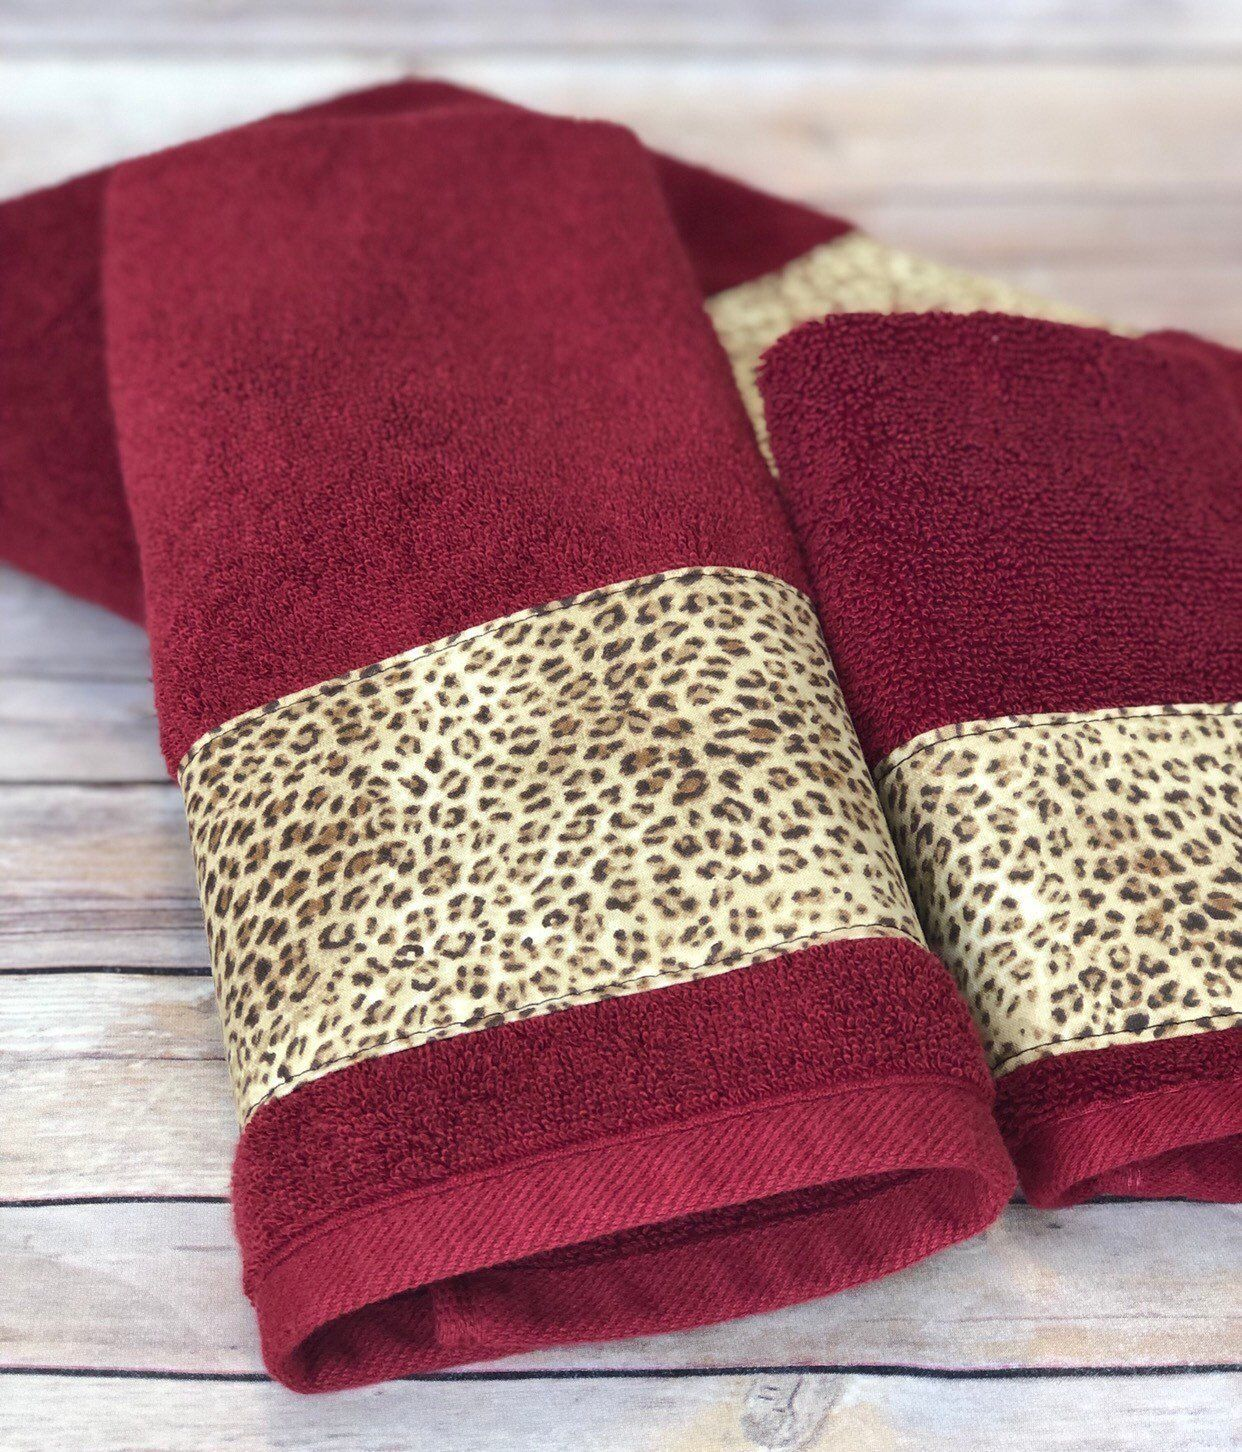 Leopard Red Bath Towels Cream And Brown Leopard Print On Red